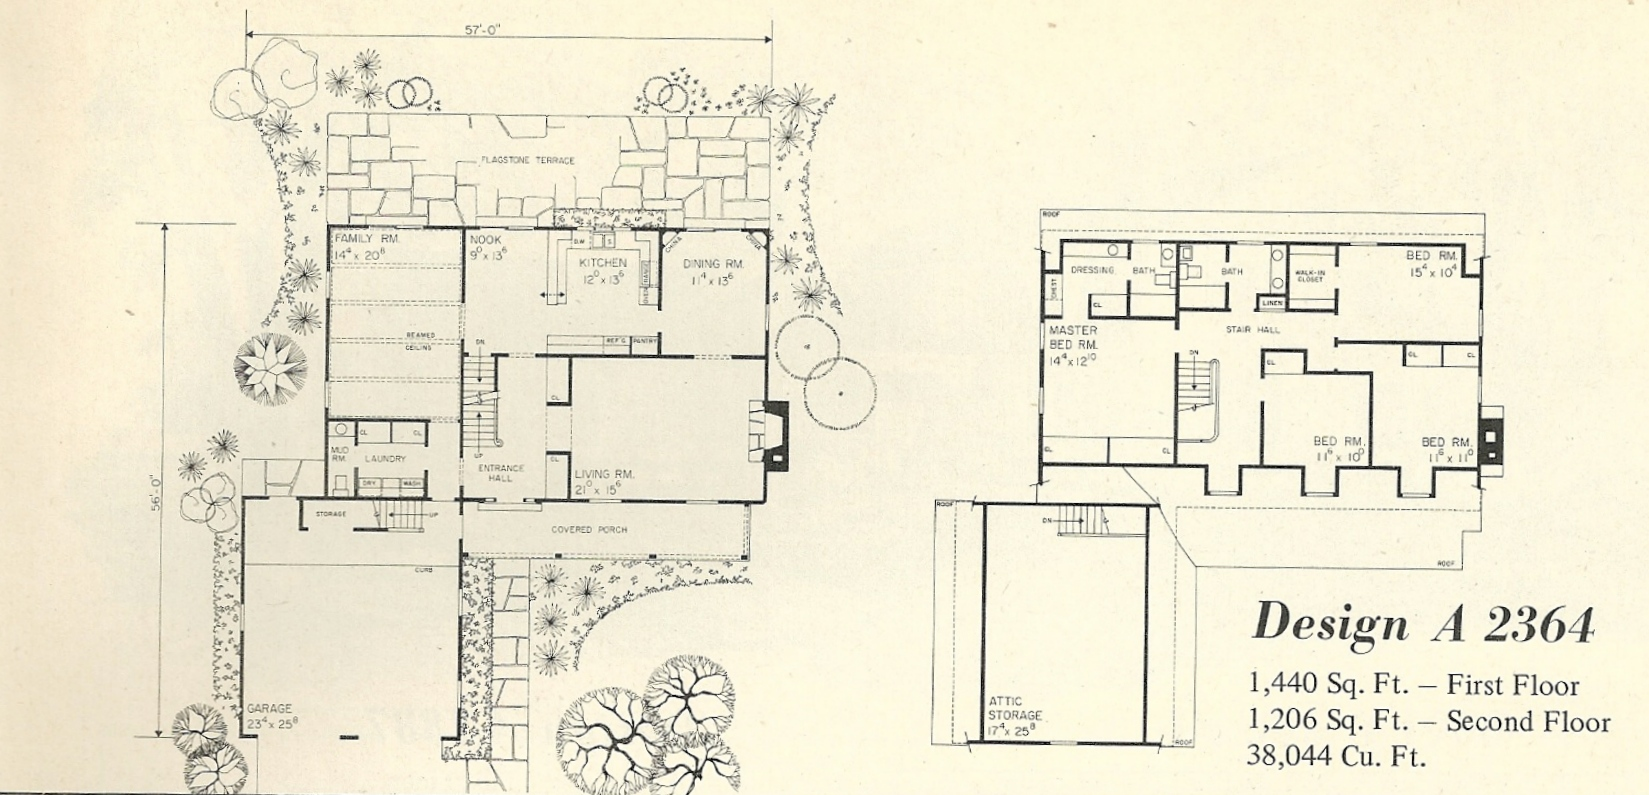 Vintage house plans 2364a antique alter ego for 1970s house floor plans